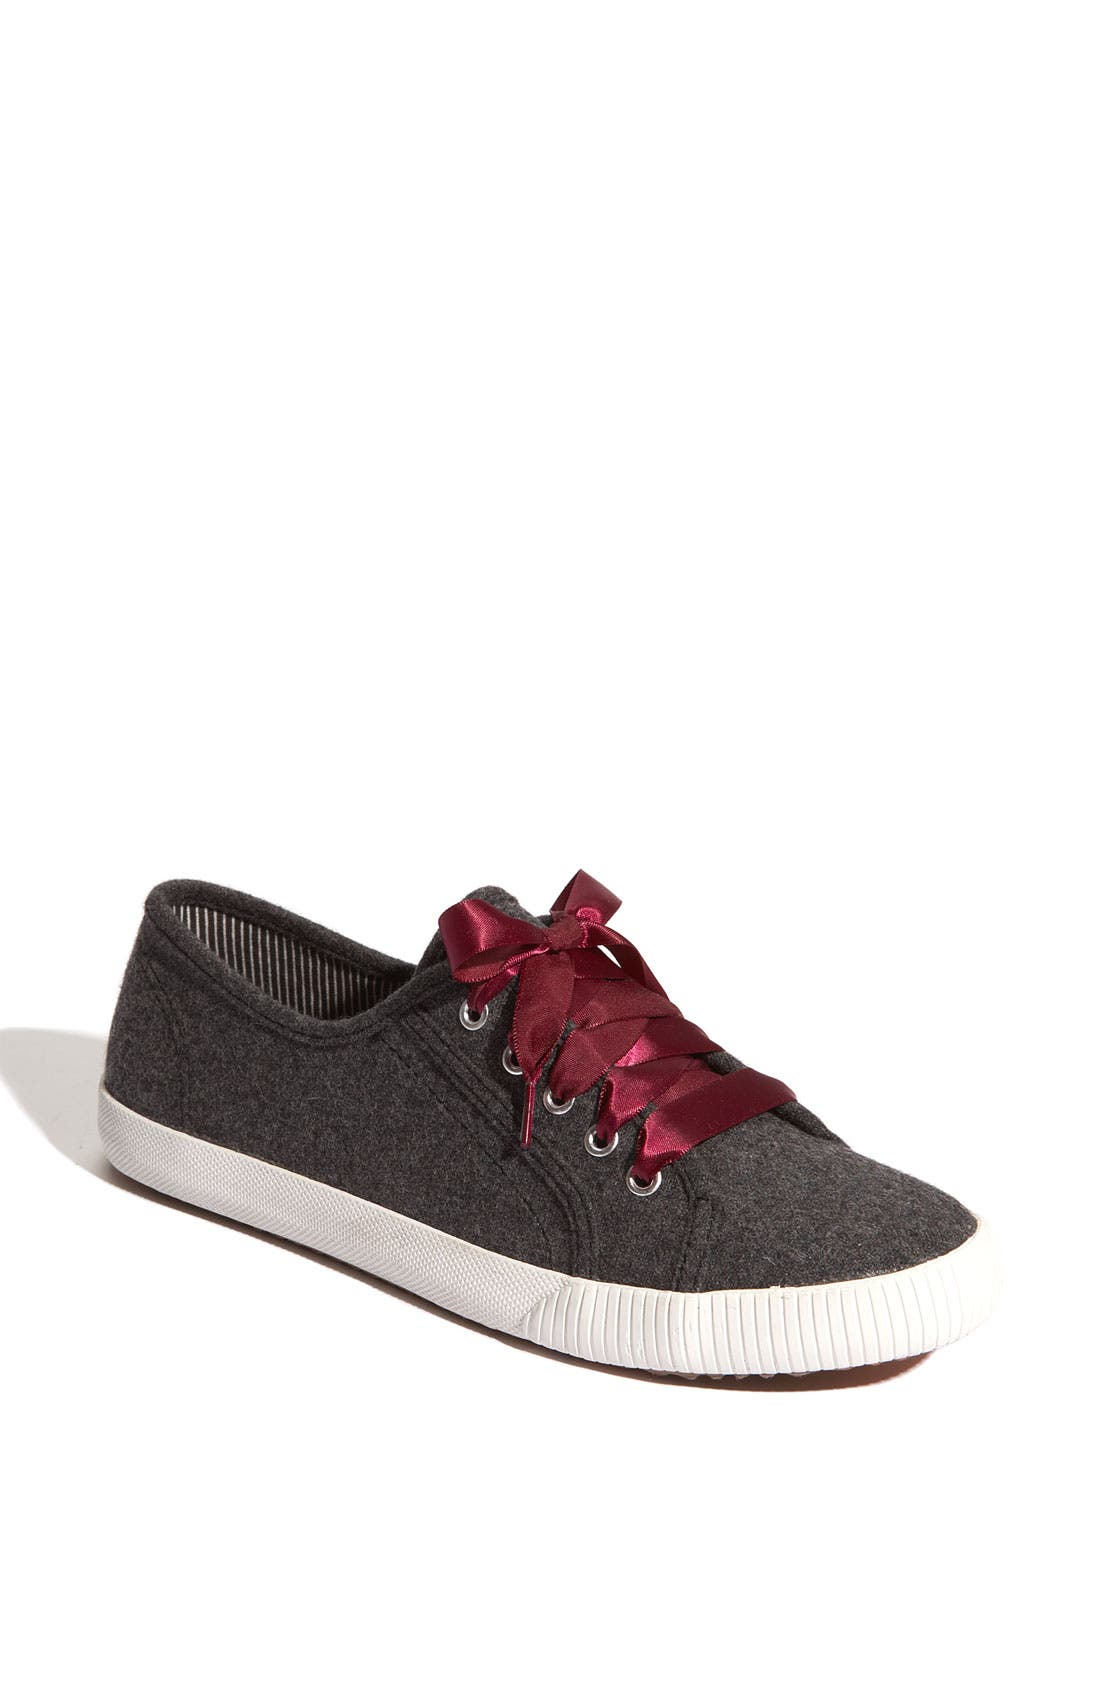 Alternate Image 1 Selected - Keds® 'Champion - Celeb Wooly' Sneaker